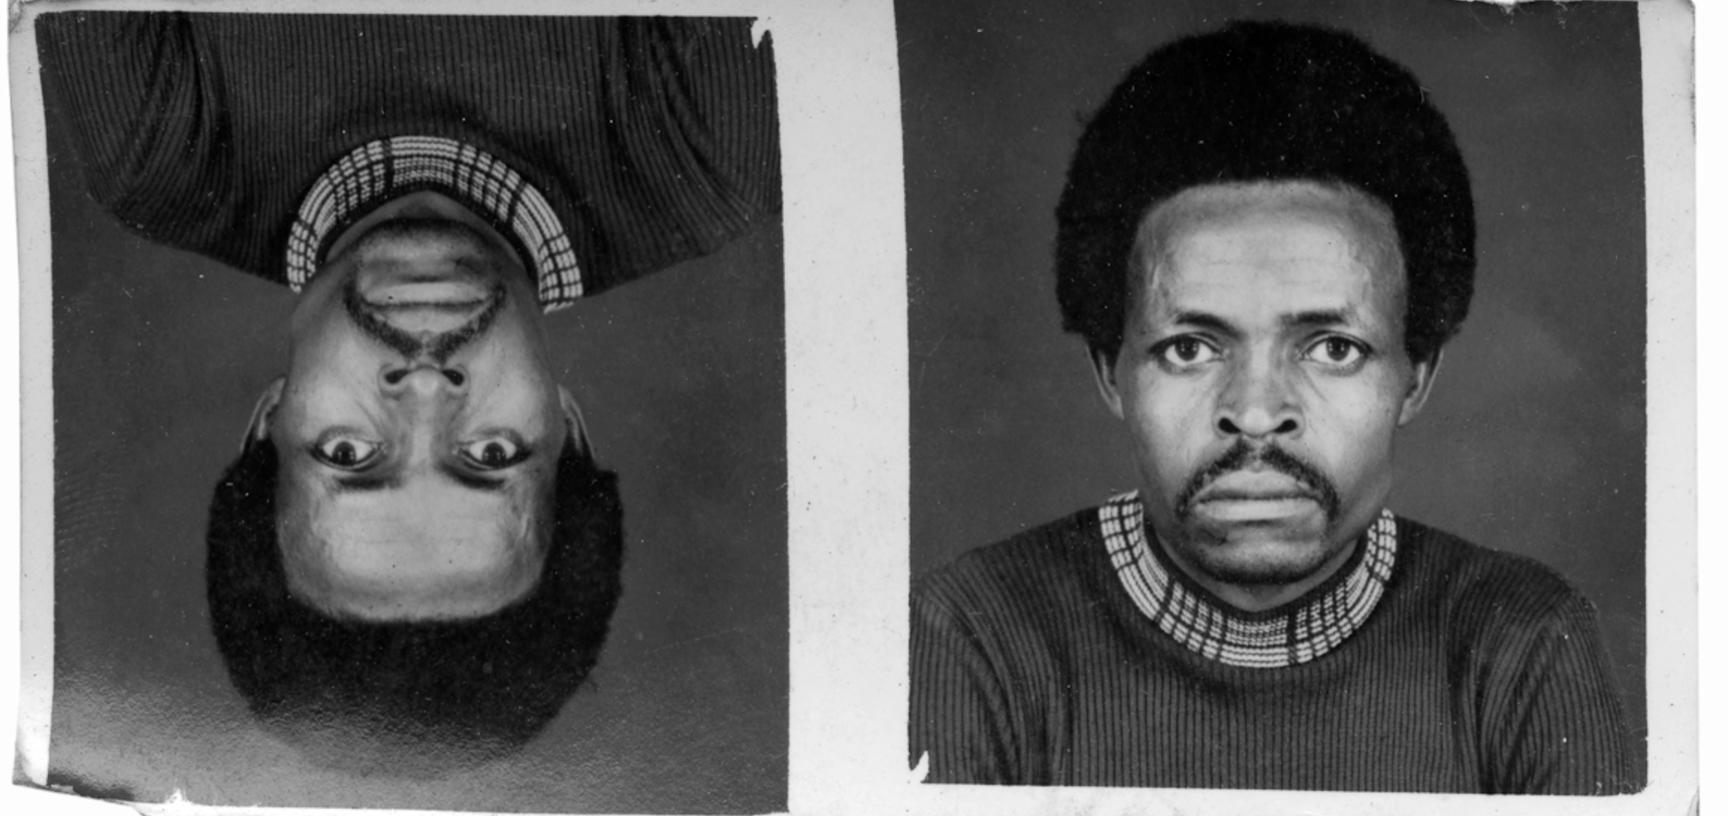 Example of Jacques Touselle's printing work: a pair of identity card portraits stamped with the studio's name and date on the reverse. Photograph by Jacques Touselle. Mbouda, Cameroon. 1985.